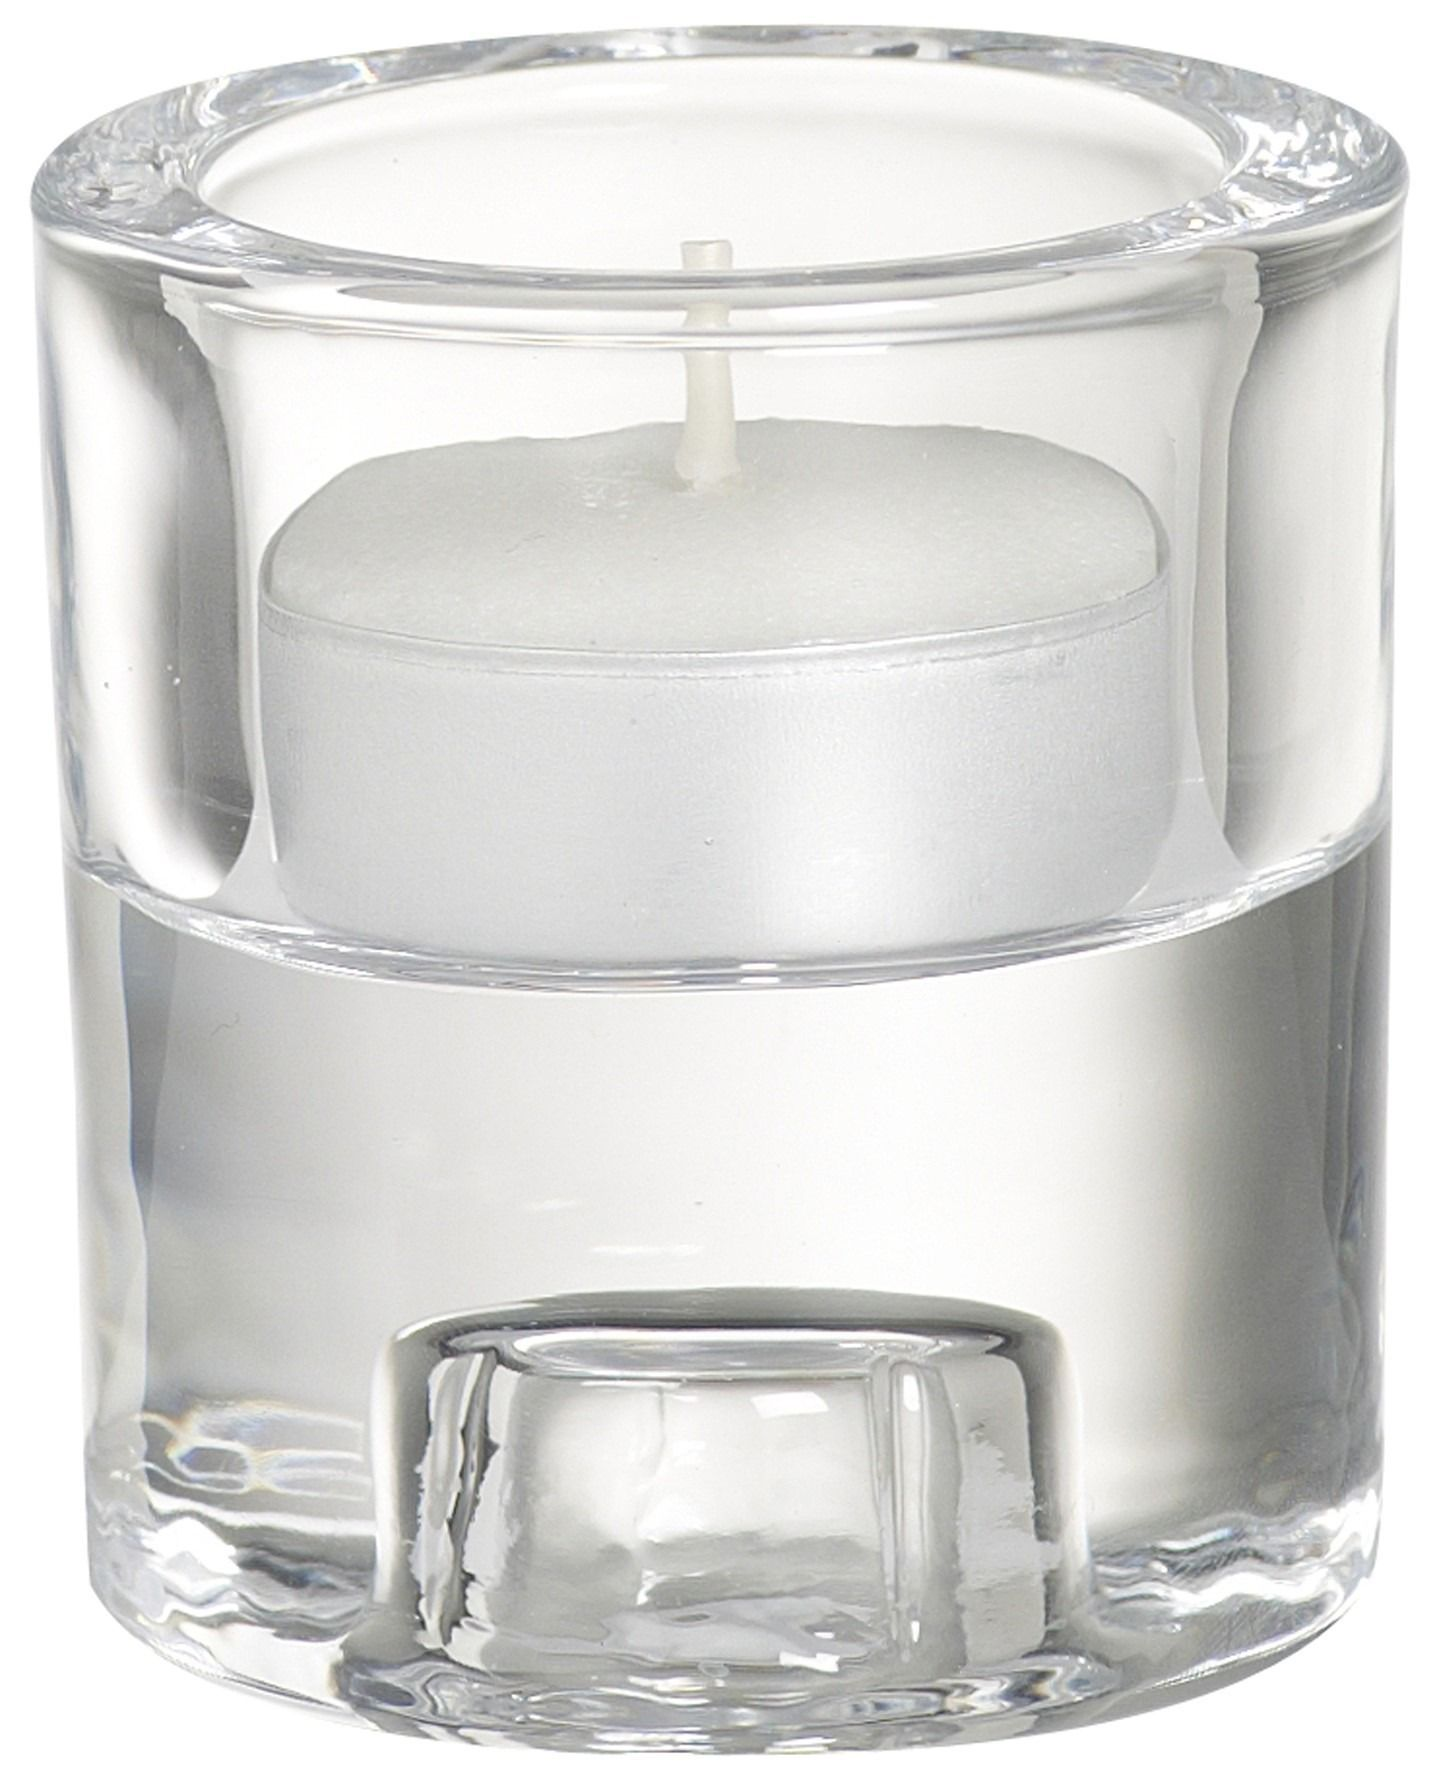 2-in-1 Candle holder round